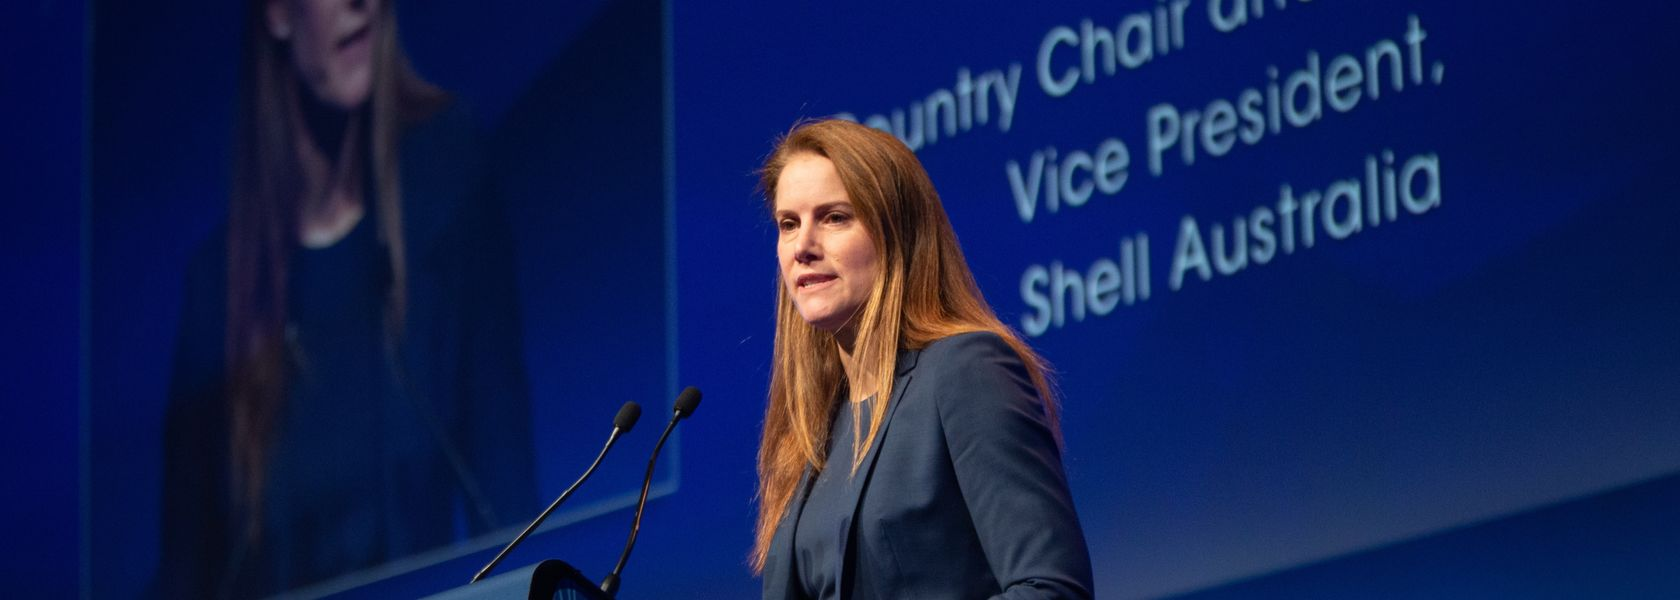 Yujnovich stepping down from Shell country manager